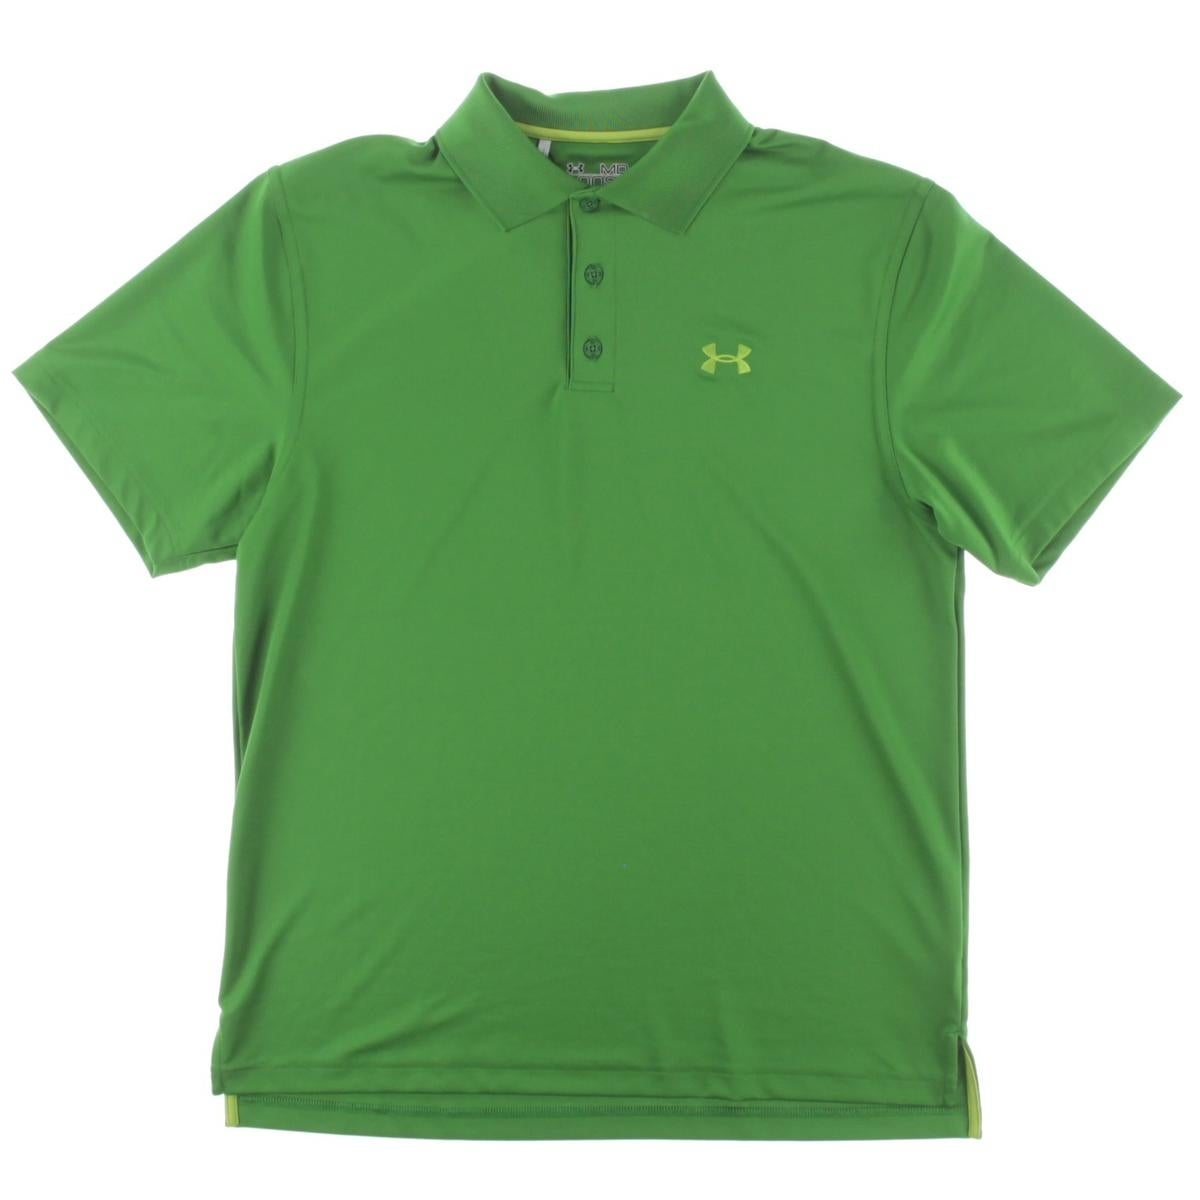 Shop Under Armour Mens Polo Shirt Knit Solid M Free Shipping On